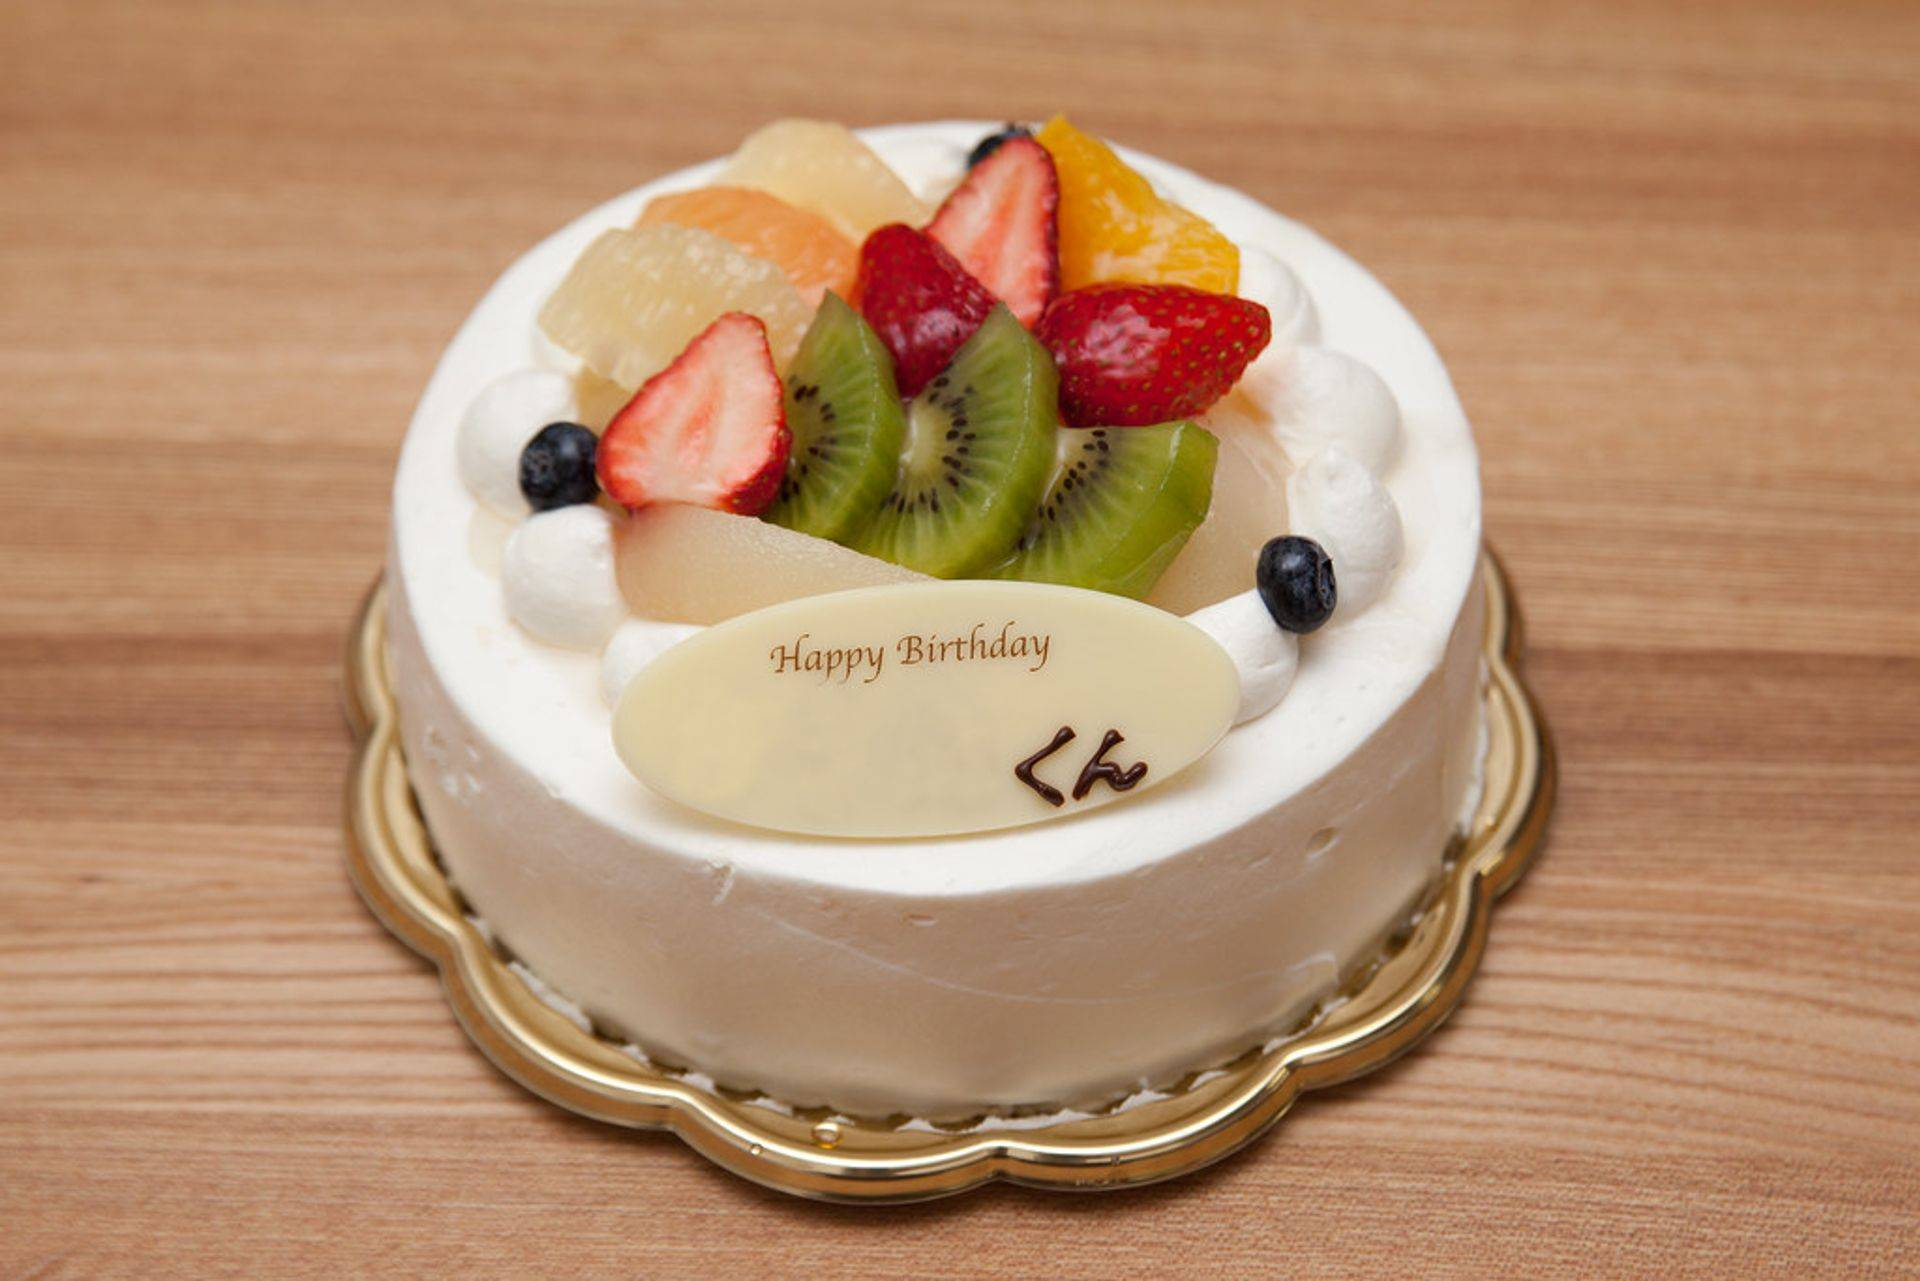 Vanilla Cake, cream cheese icing, topped with fresh fruit